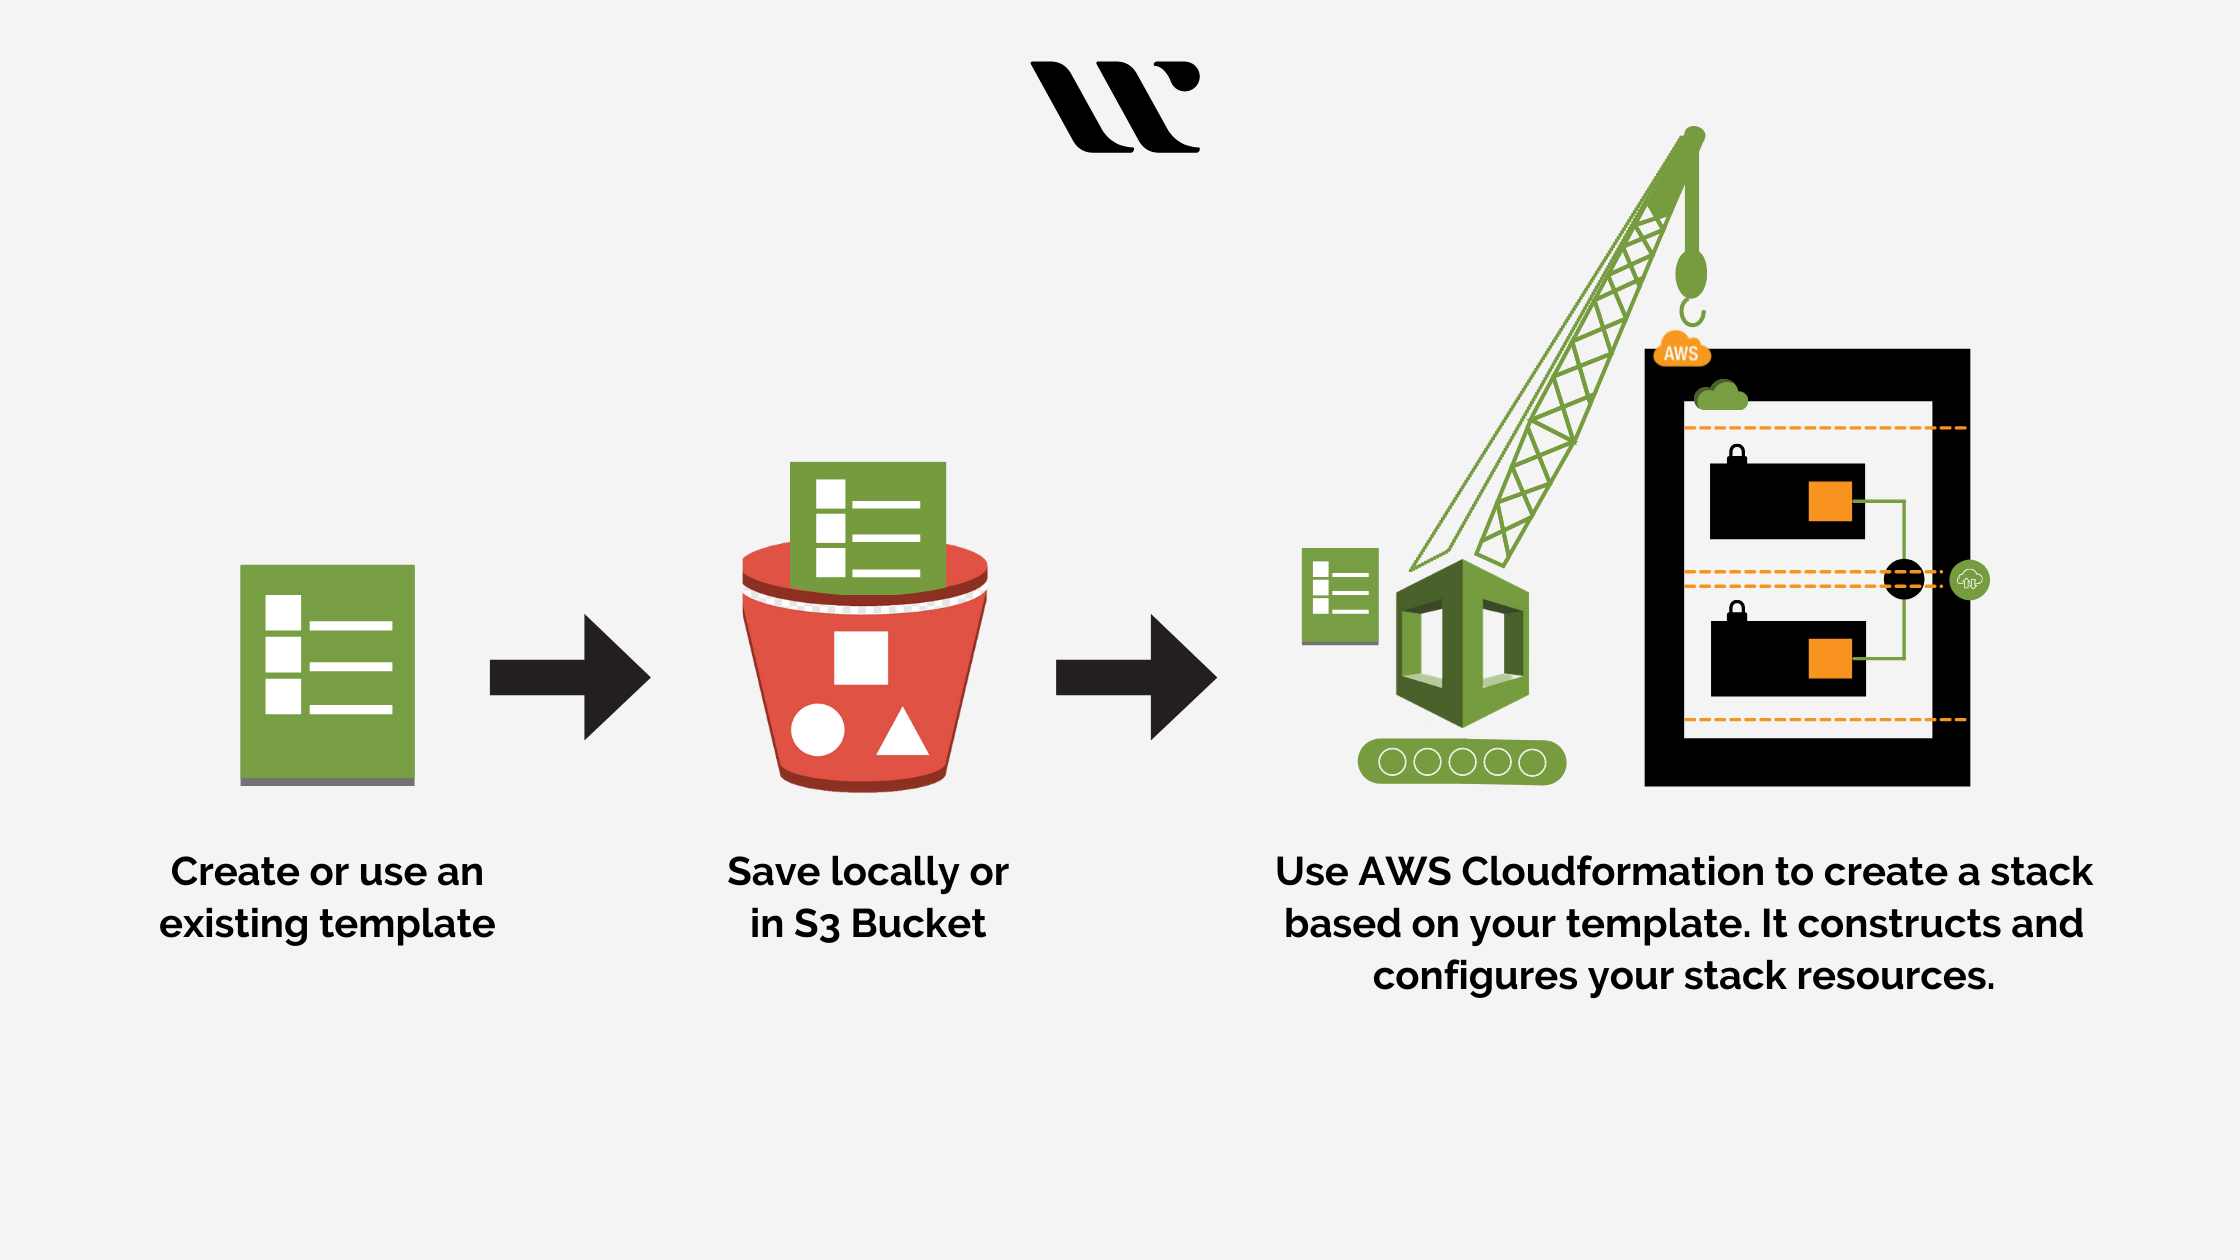 Working of AWS CloudFormation